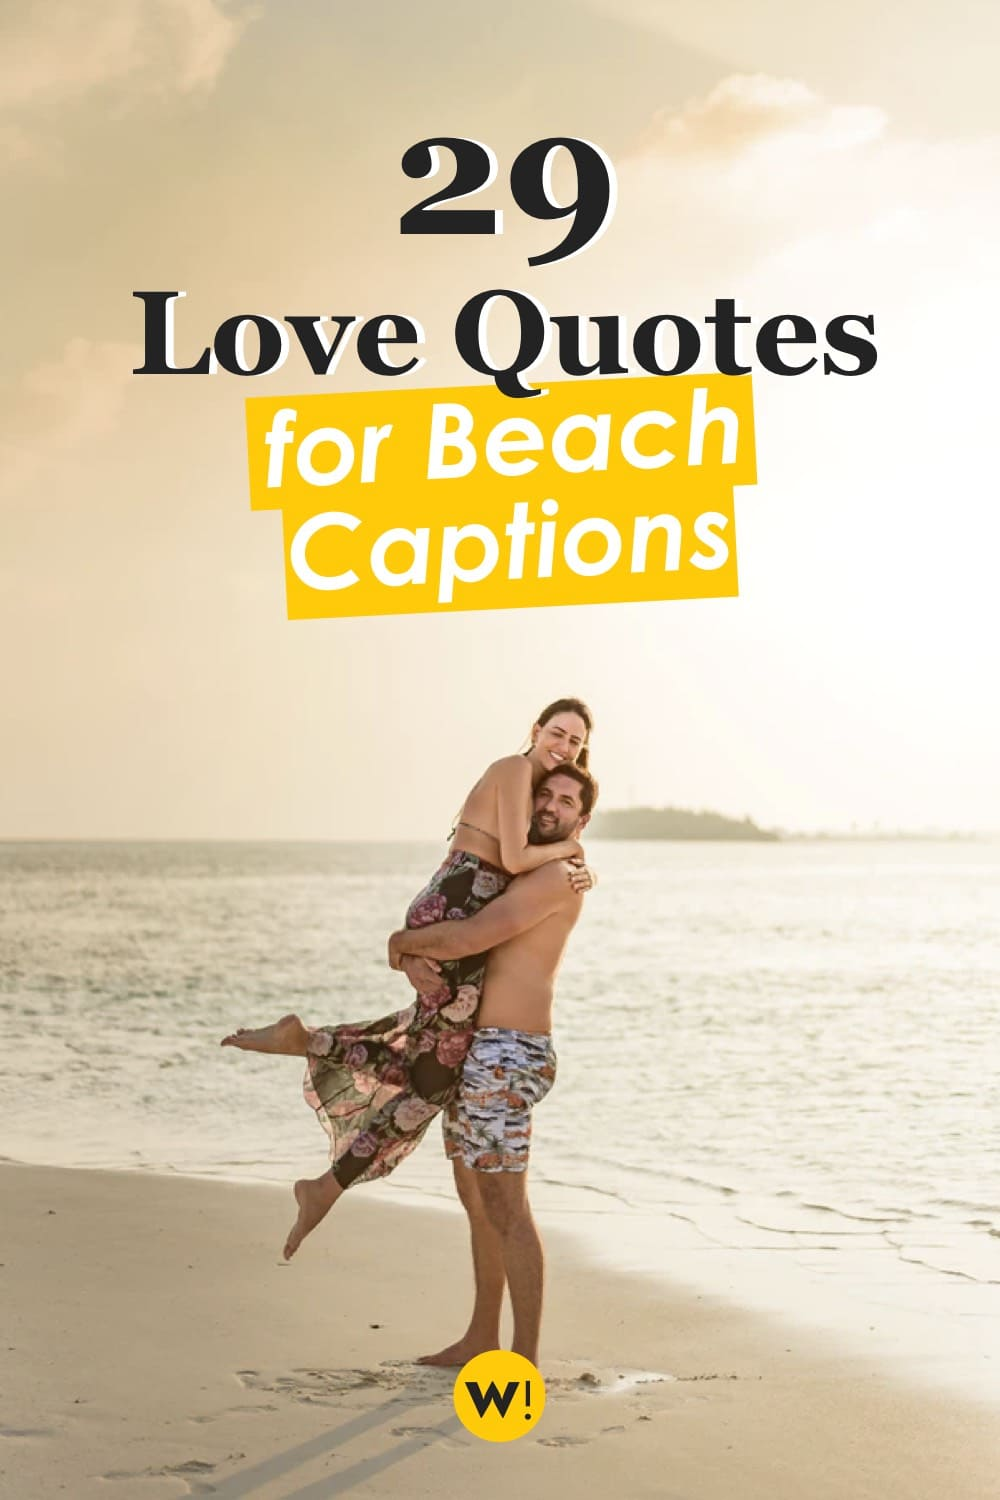 Who doesn't love the beach? I know I do. And what's better than beach love quotes to express how much you love the beach! The beach is also a great place for love and romance.These romantic beach quotes all help convey that feeling. beach love quotes |romantic beach quotes couple |love beach quotes happiness |love beach quotes relationships | love sea quotes | beach quotes instagram caption couple |beach quotes instagram boyfriend